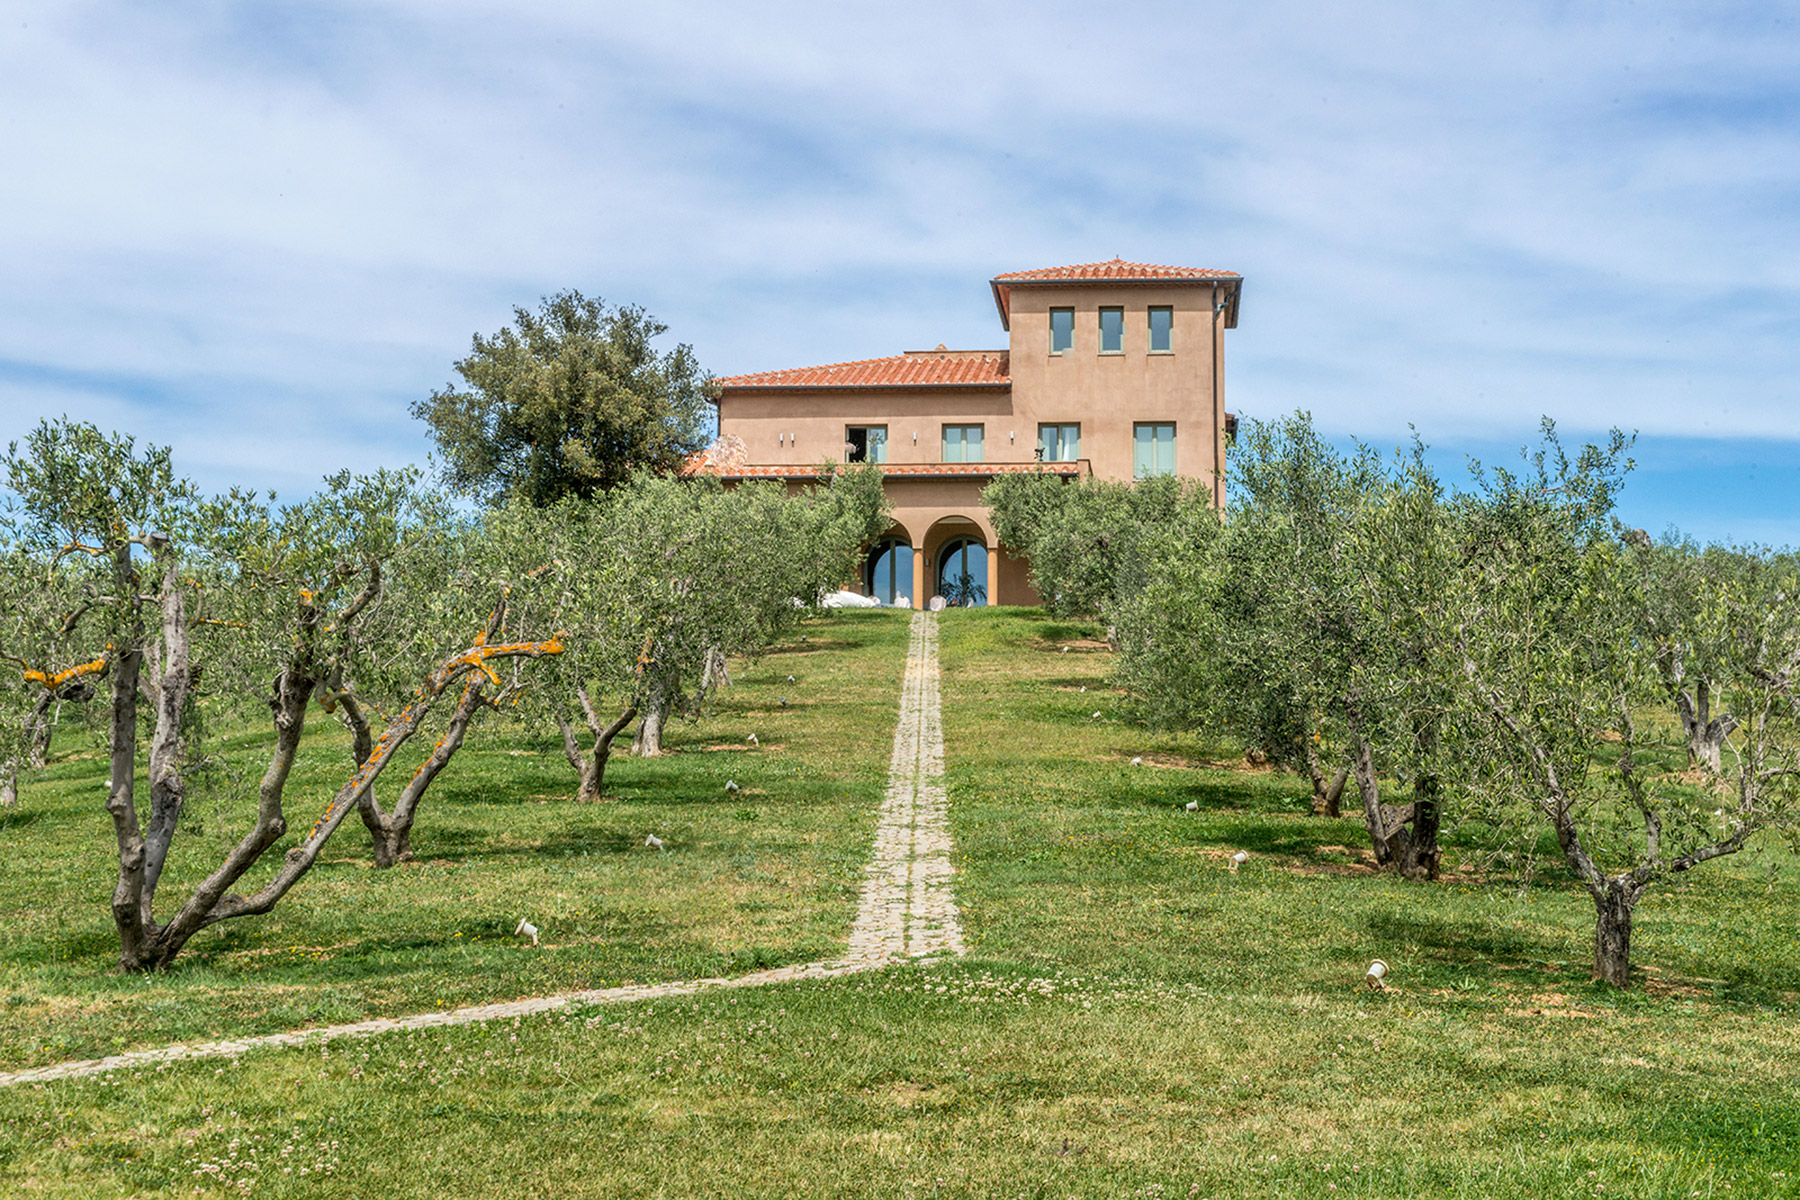 Additional photo for property listing at Unique luxury contemporary villa in an olive grove estate Massa Marittima, Grosseto Italy